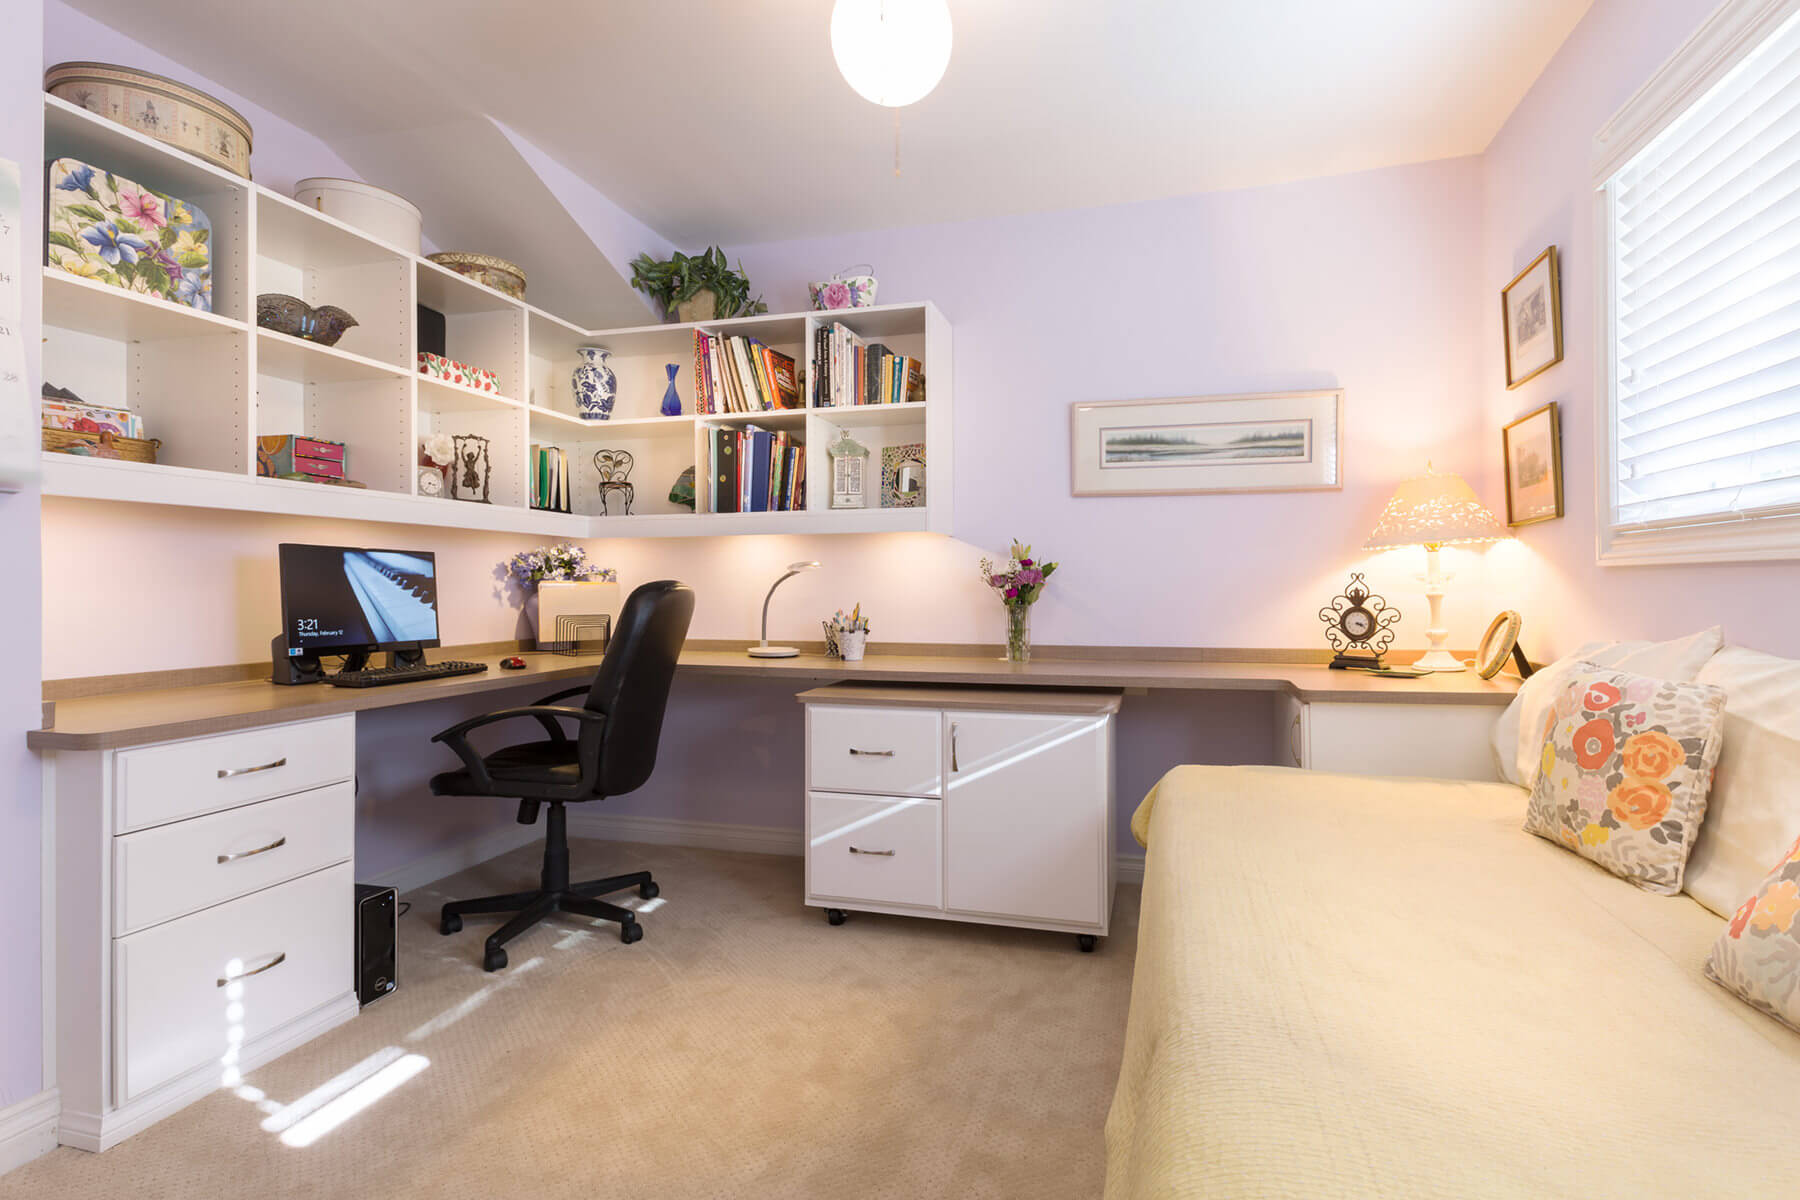 Home Office with U-Shaped Built-In Desk and Floating Bookshelves